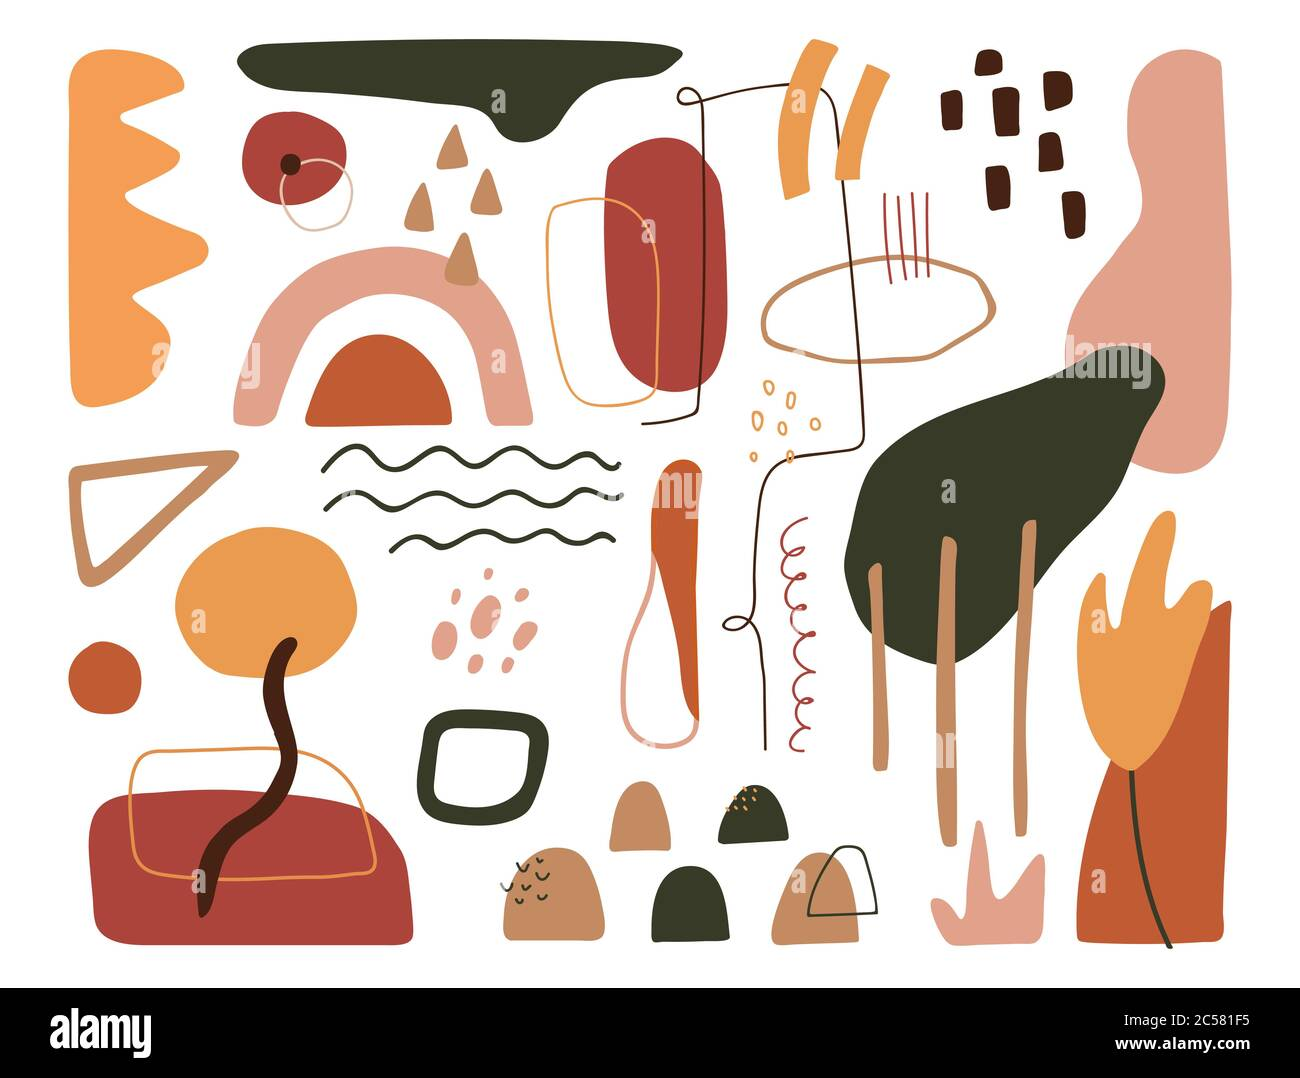 Contemporary Art Design Elements Set Modern Abstract Cover Minimal Background Organic Shapes In Pastel Colors Trendy Geometric Texture Vector Stock Vector Image Art Alamy